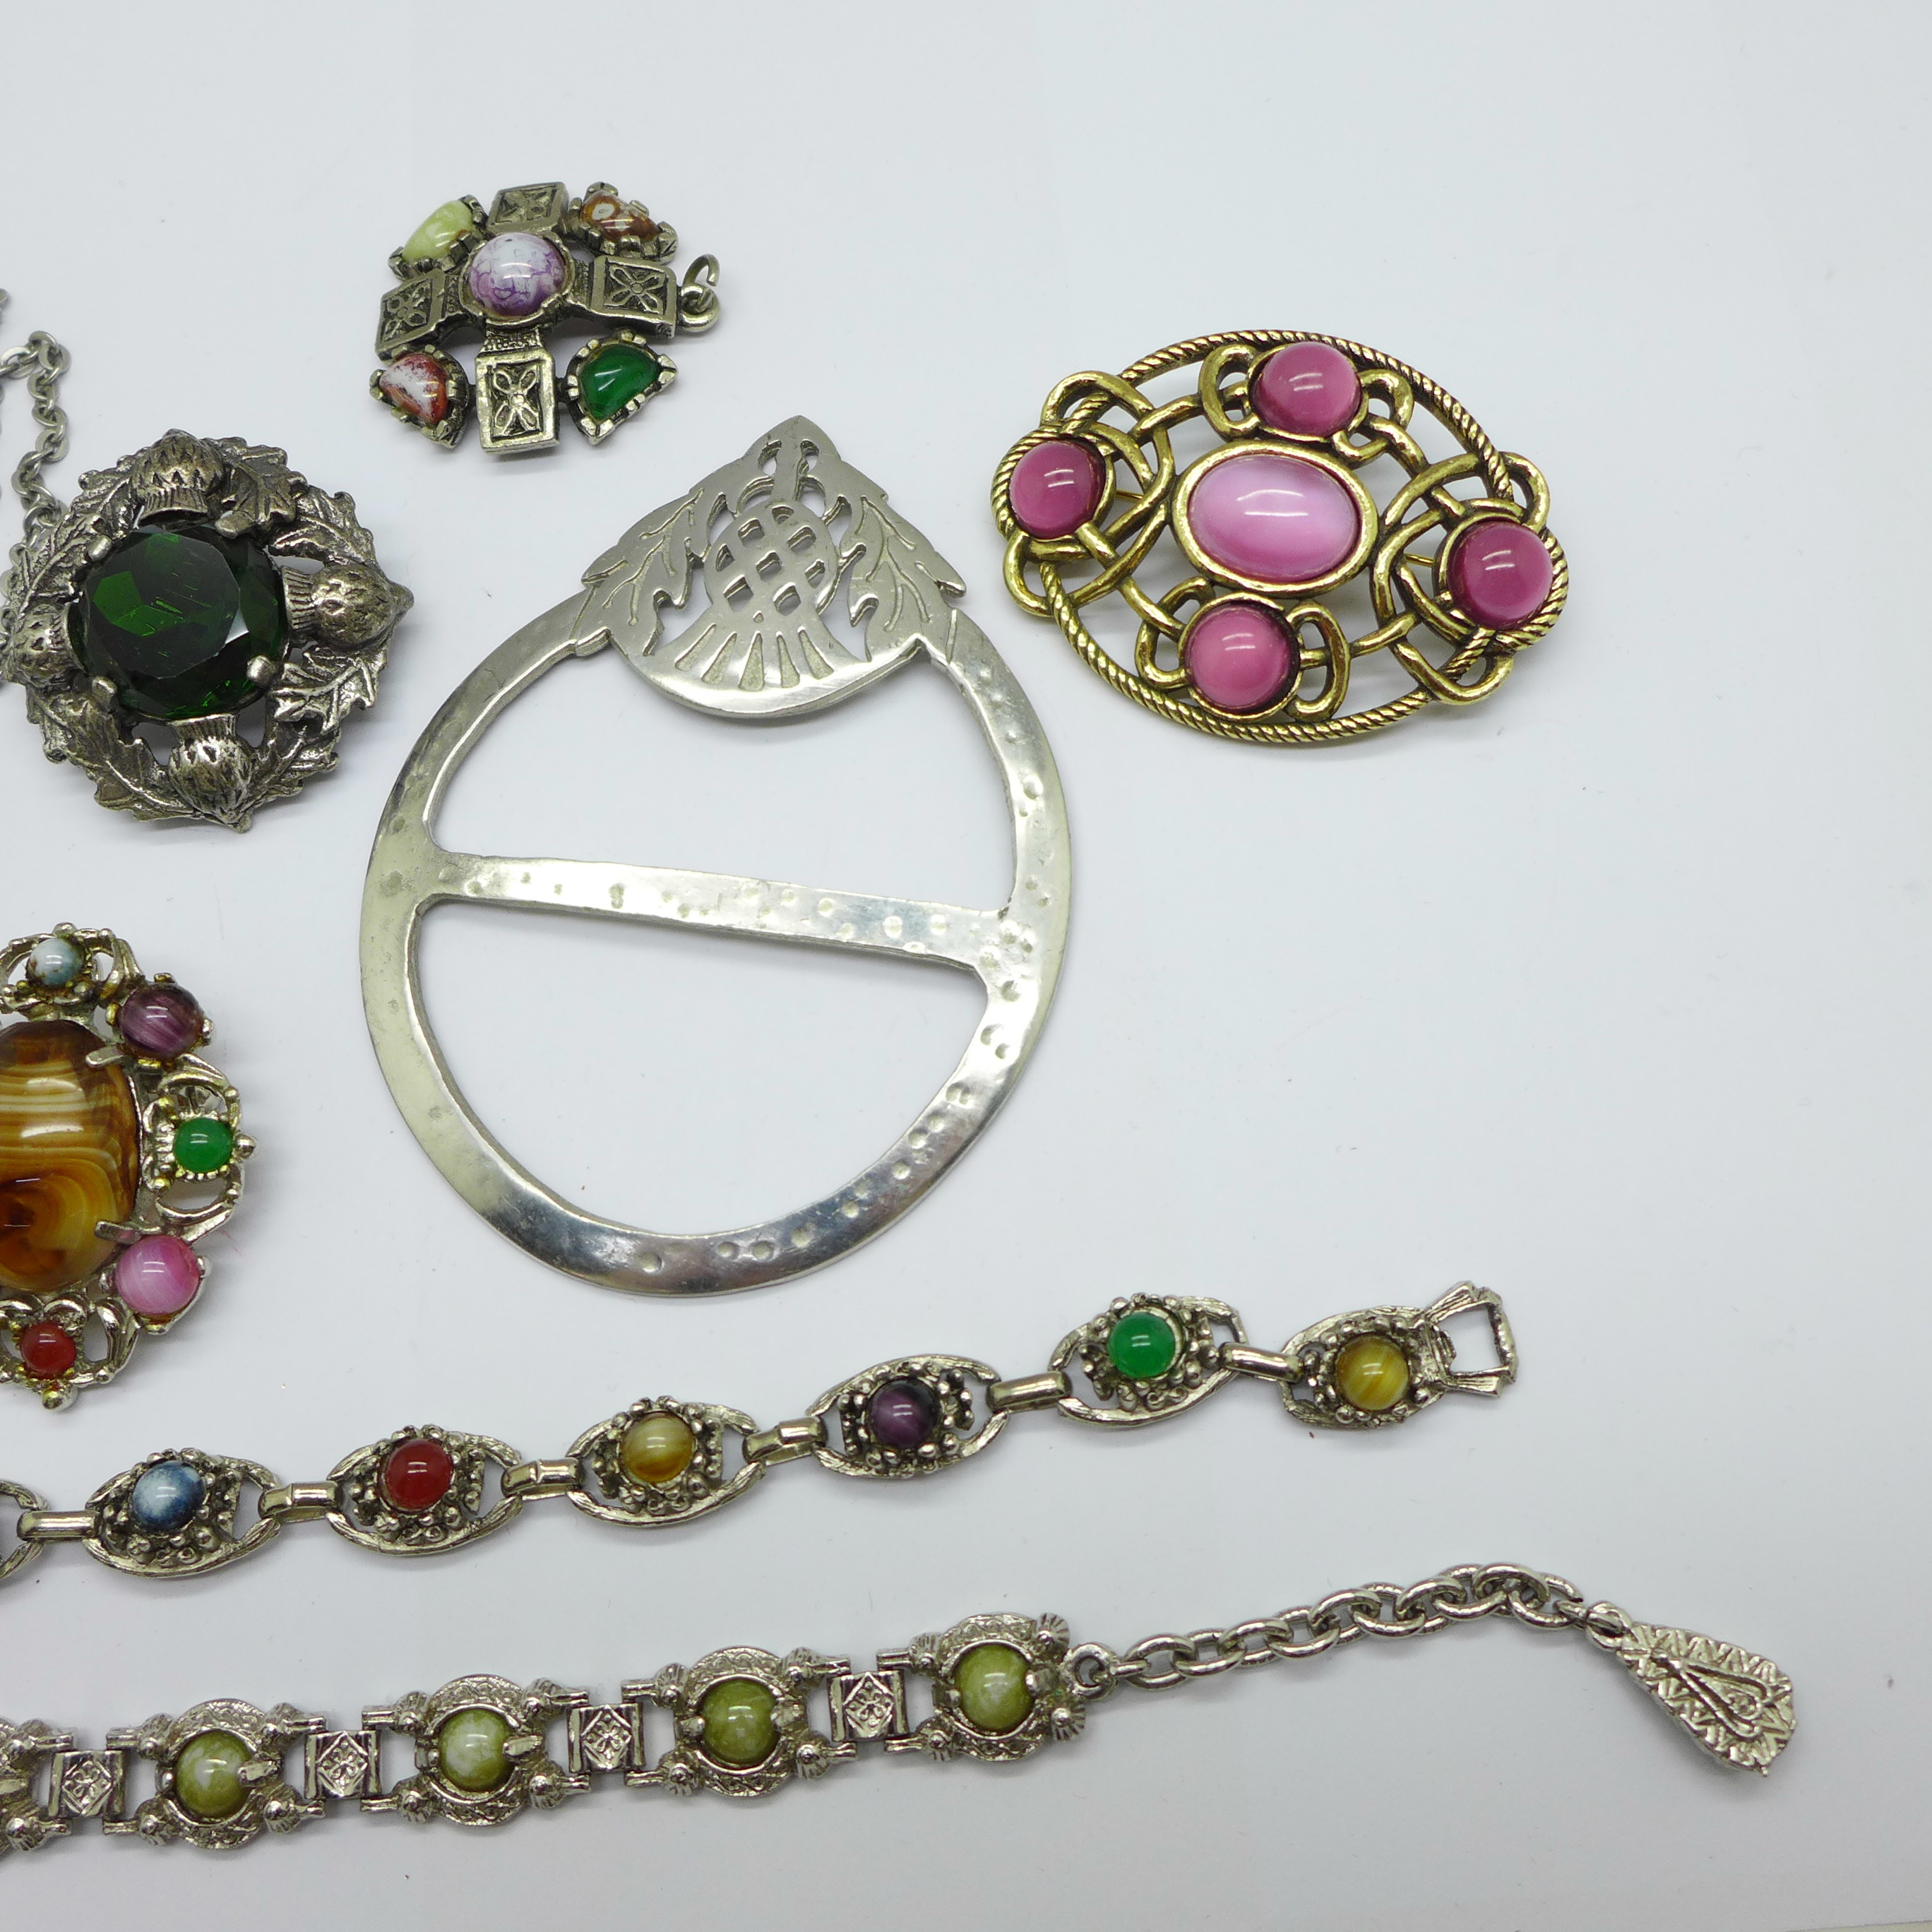 Celtic jewellery including Miracle and Justin pewter - Image 3 of 3